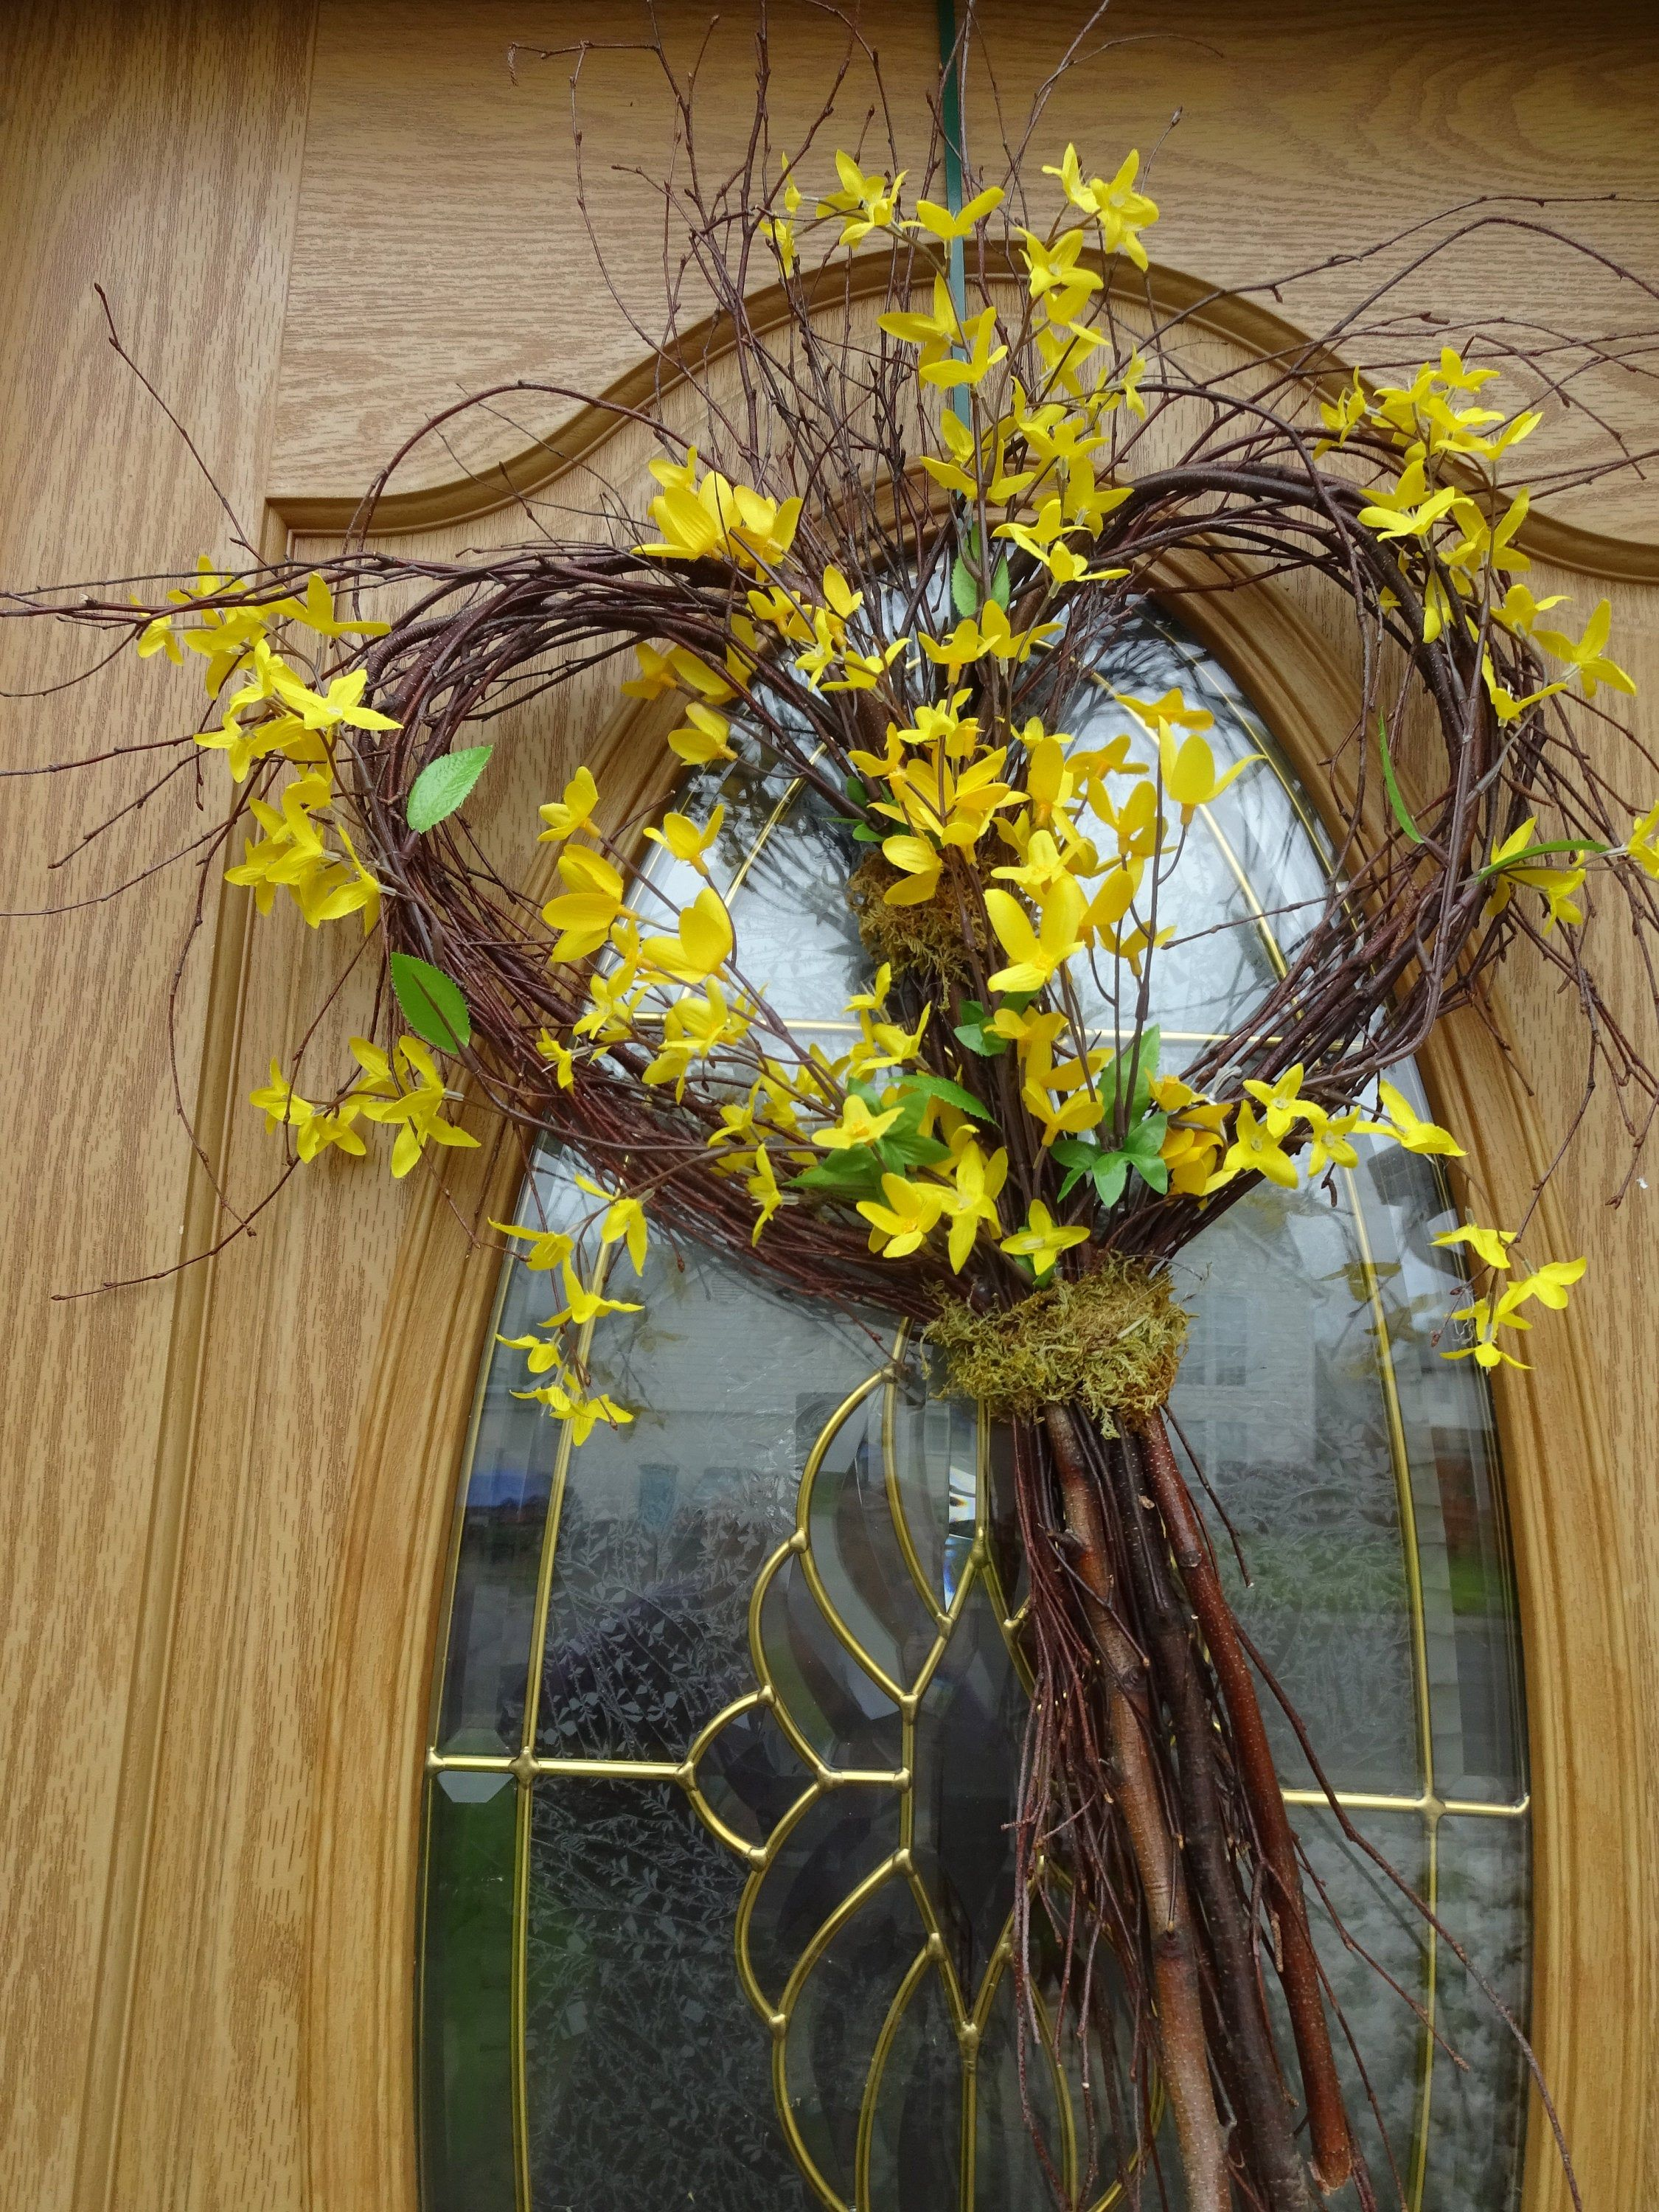 Heart Twig Wreath Forsythia Wreath Twig Wreath Wedding Decorations Summer Wreath Front Door Wreath Heart Shaped Twig Wreath In 2020 Summer Front Door Wreath Forsythia Wreath Twig Wreath